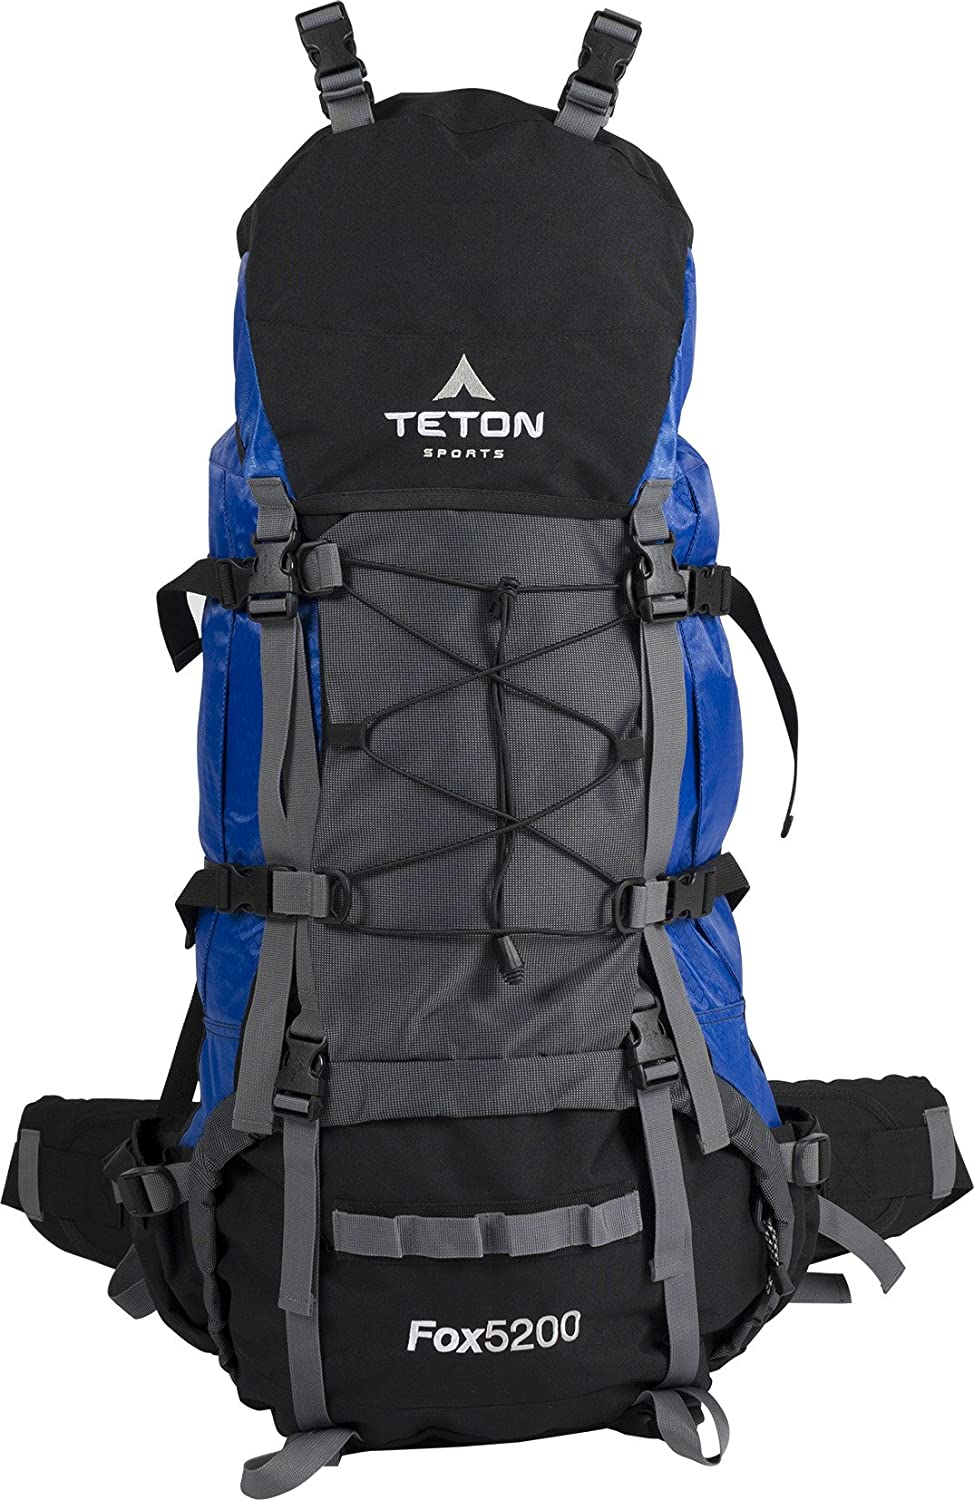 Amazon.com : Teton Sports Fox 5200 Internal Frame Backpack - Not ...